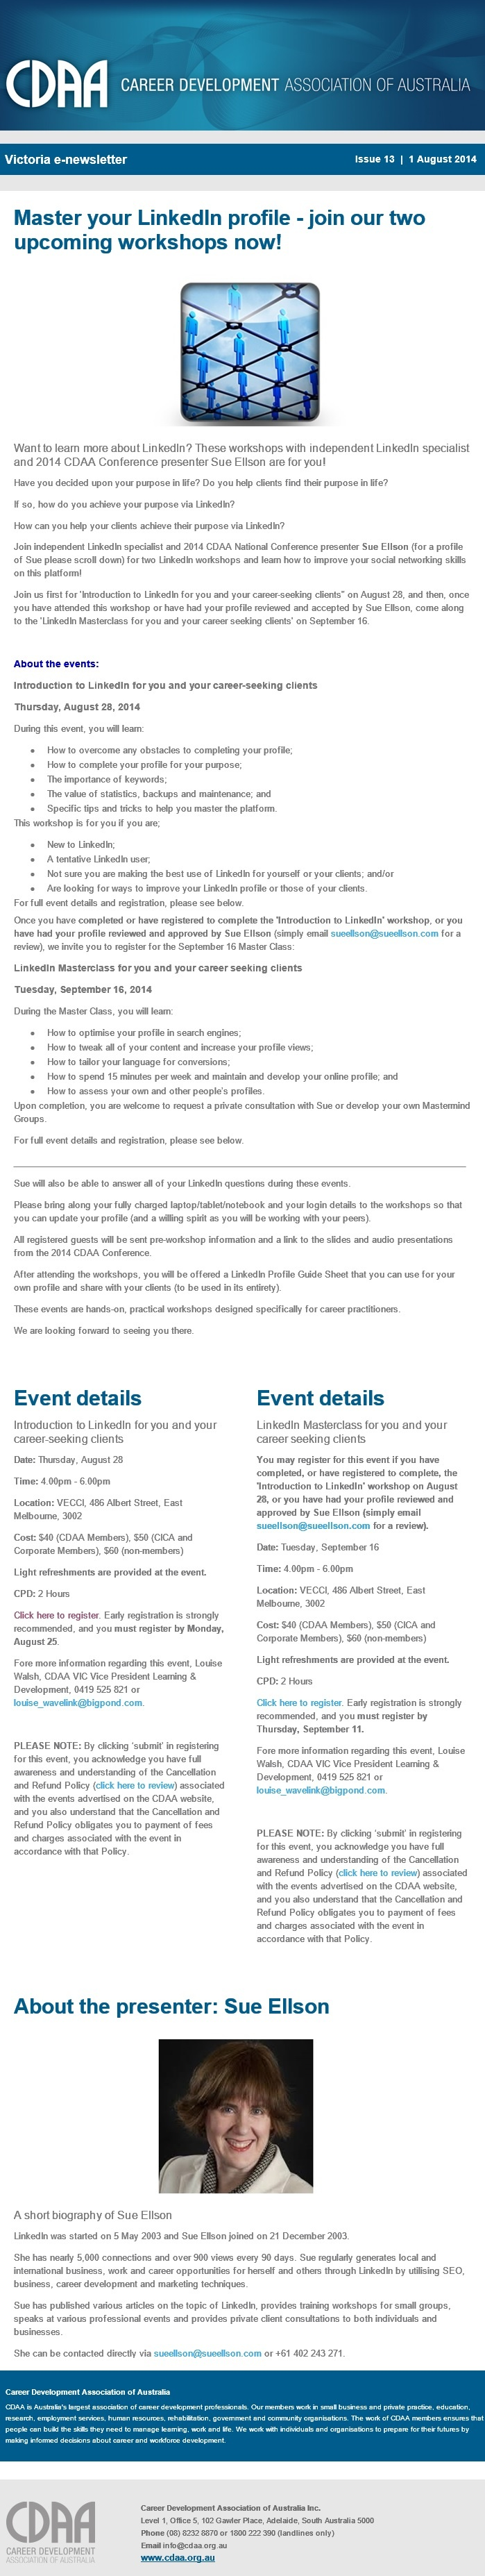 Career Development Association of Australia Introduction to LinkedIn for you and your career-seeking clients